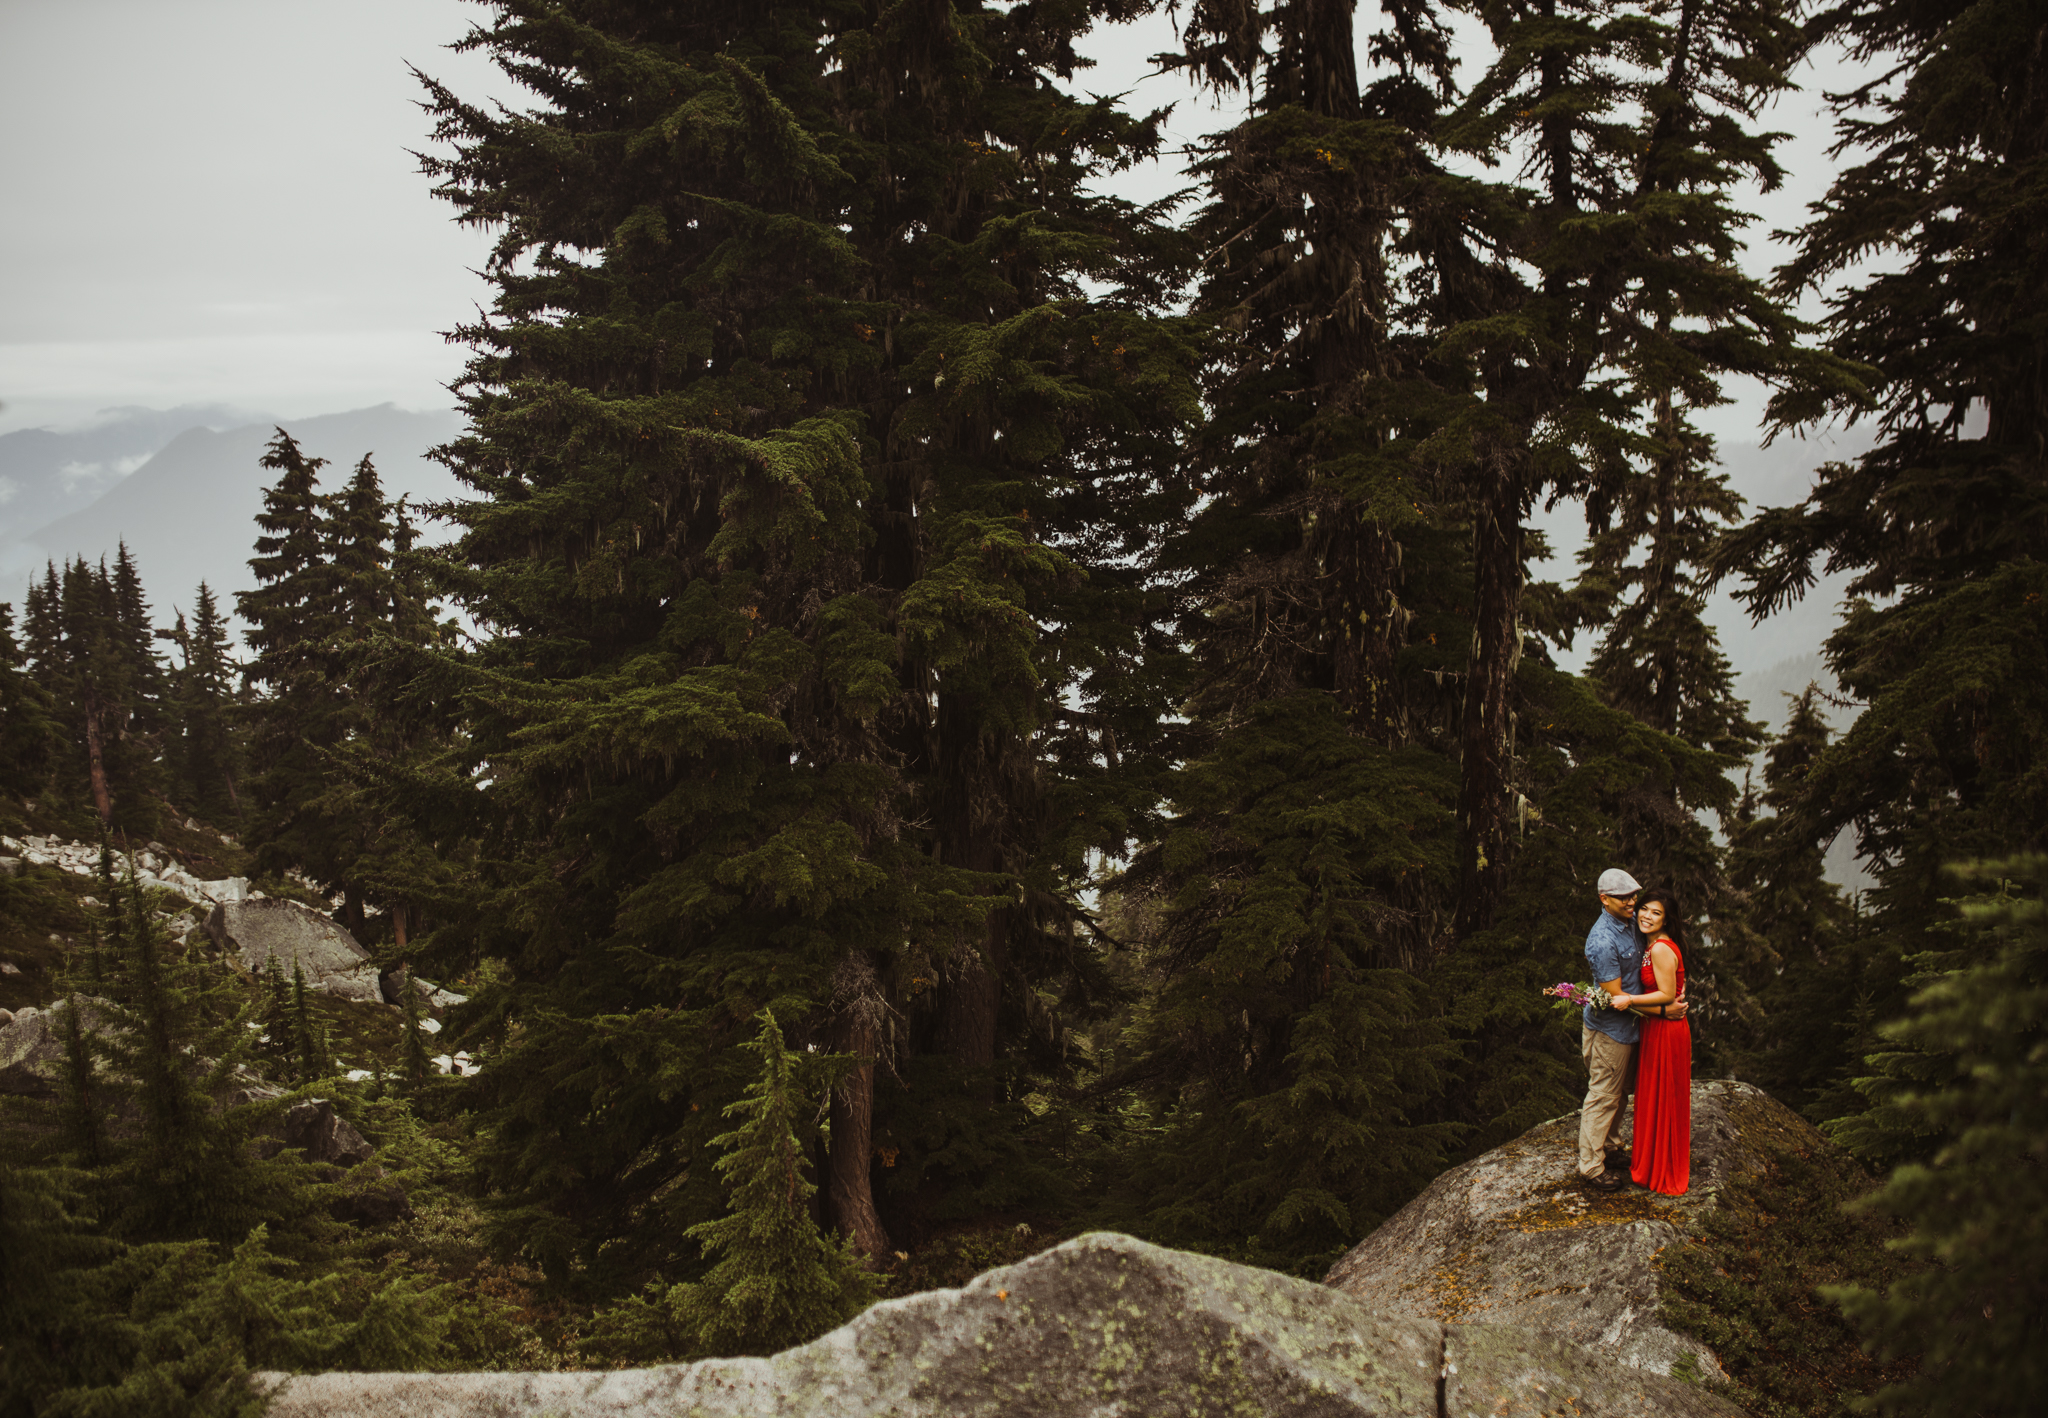 ©Isaiah-&-Taylor-Photography---Hidden-Lake-Cascade-Mountains-Engagement,-Washington-056.jpg